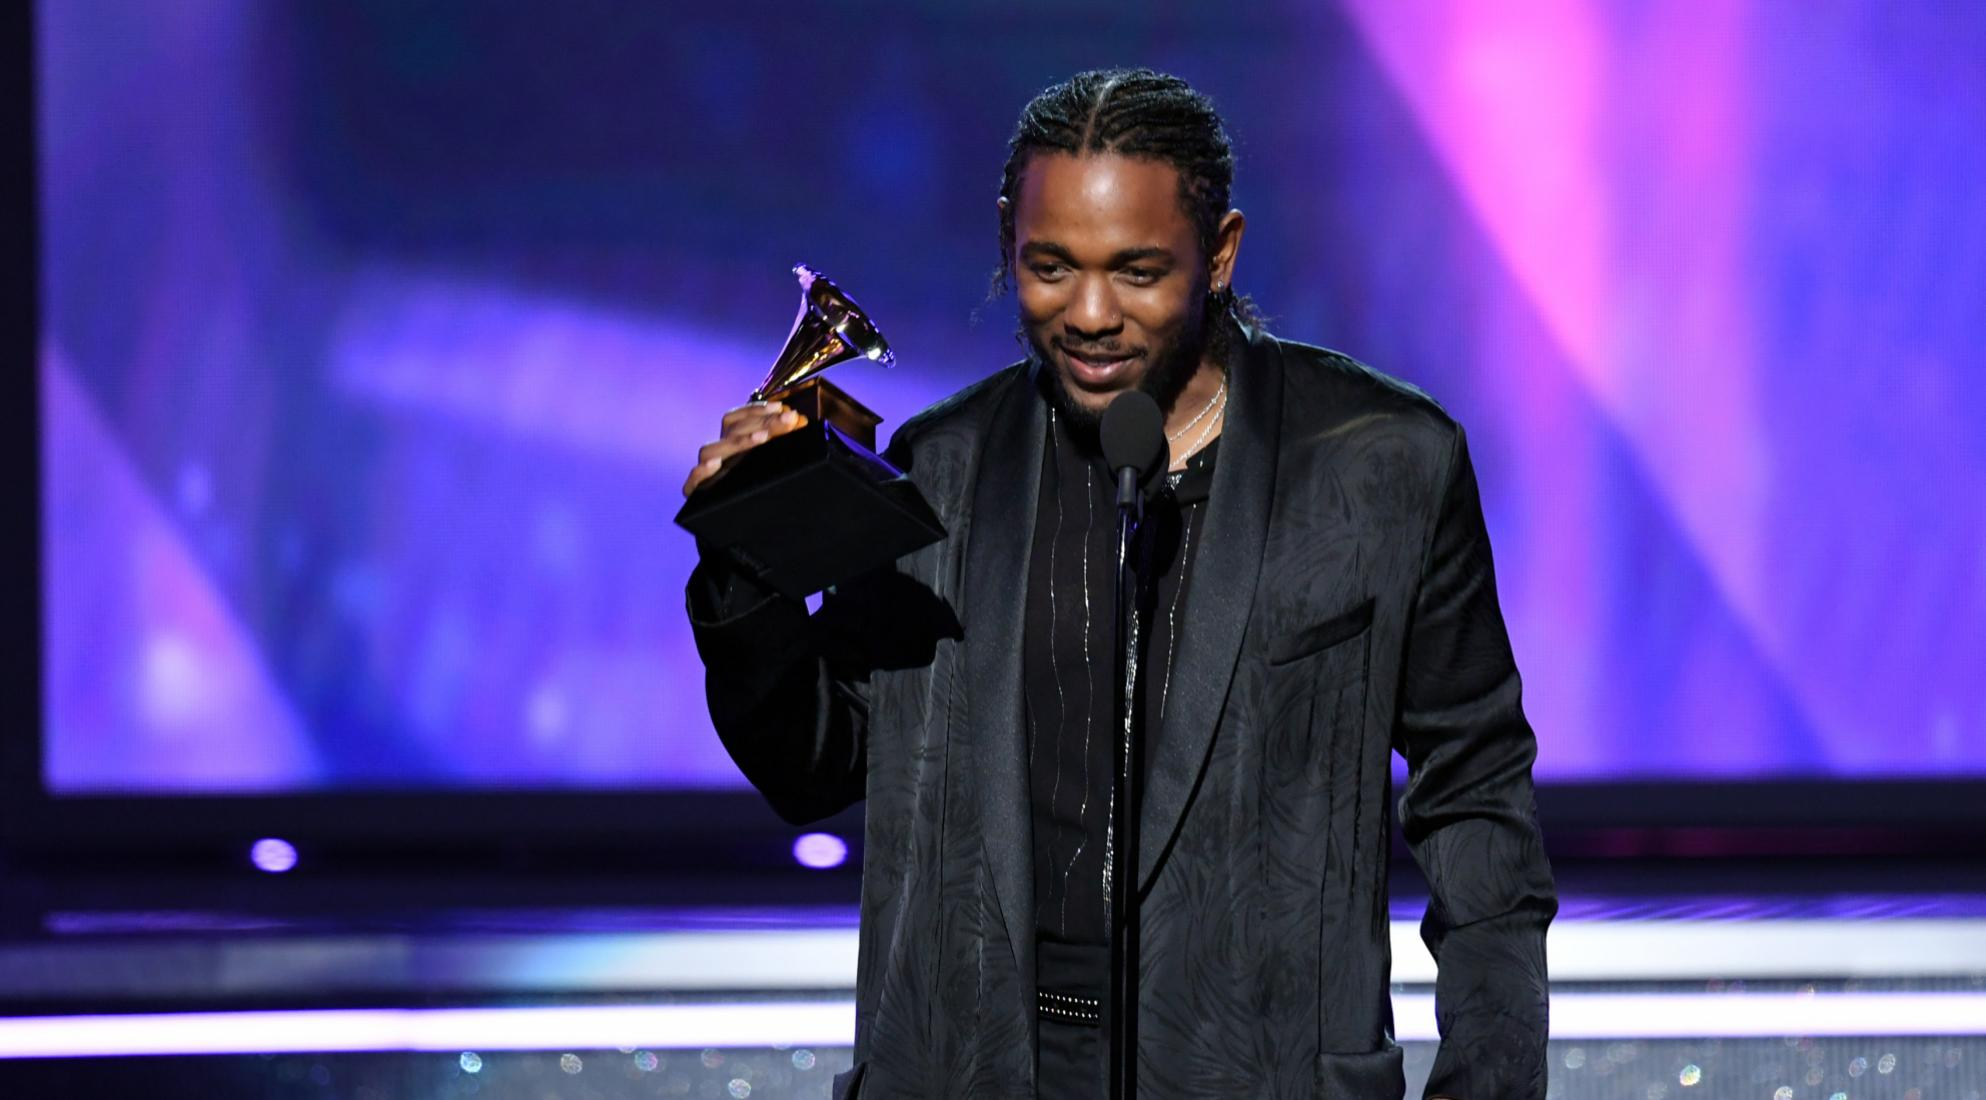 Kendrick Lamar at the 60th GRAMMY Awards in 2018